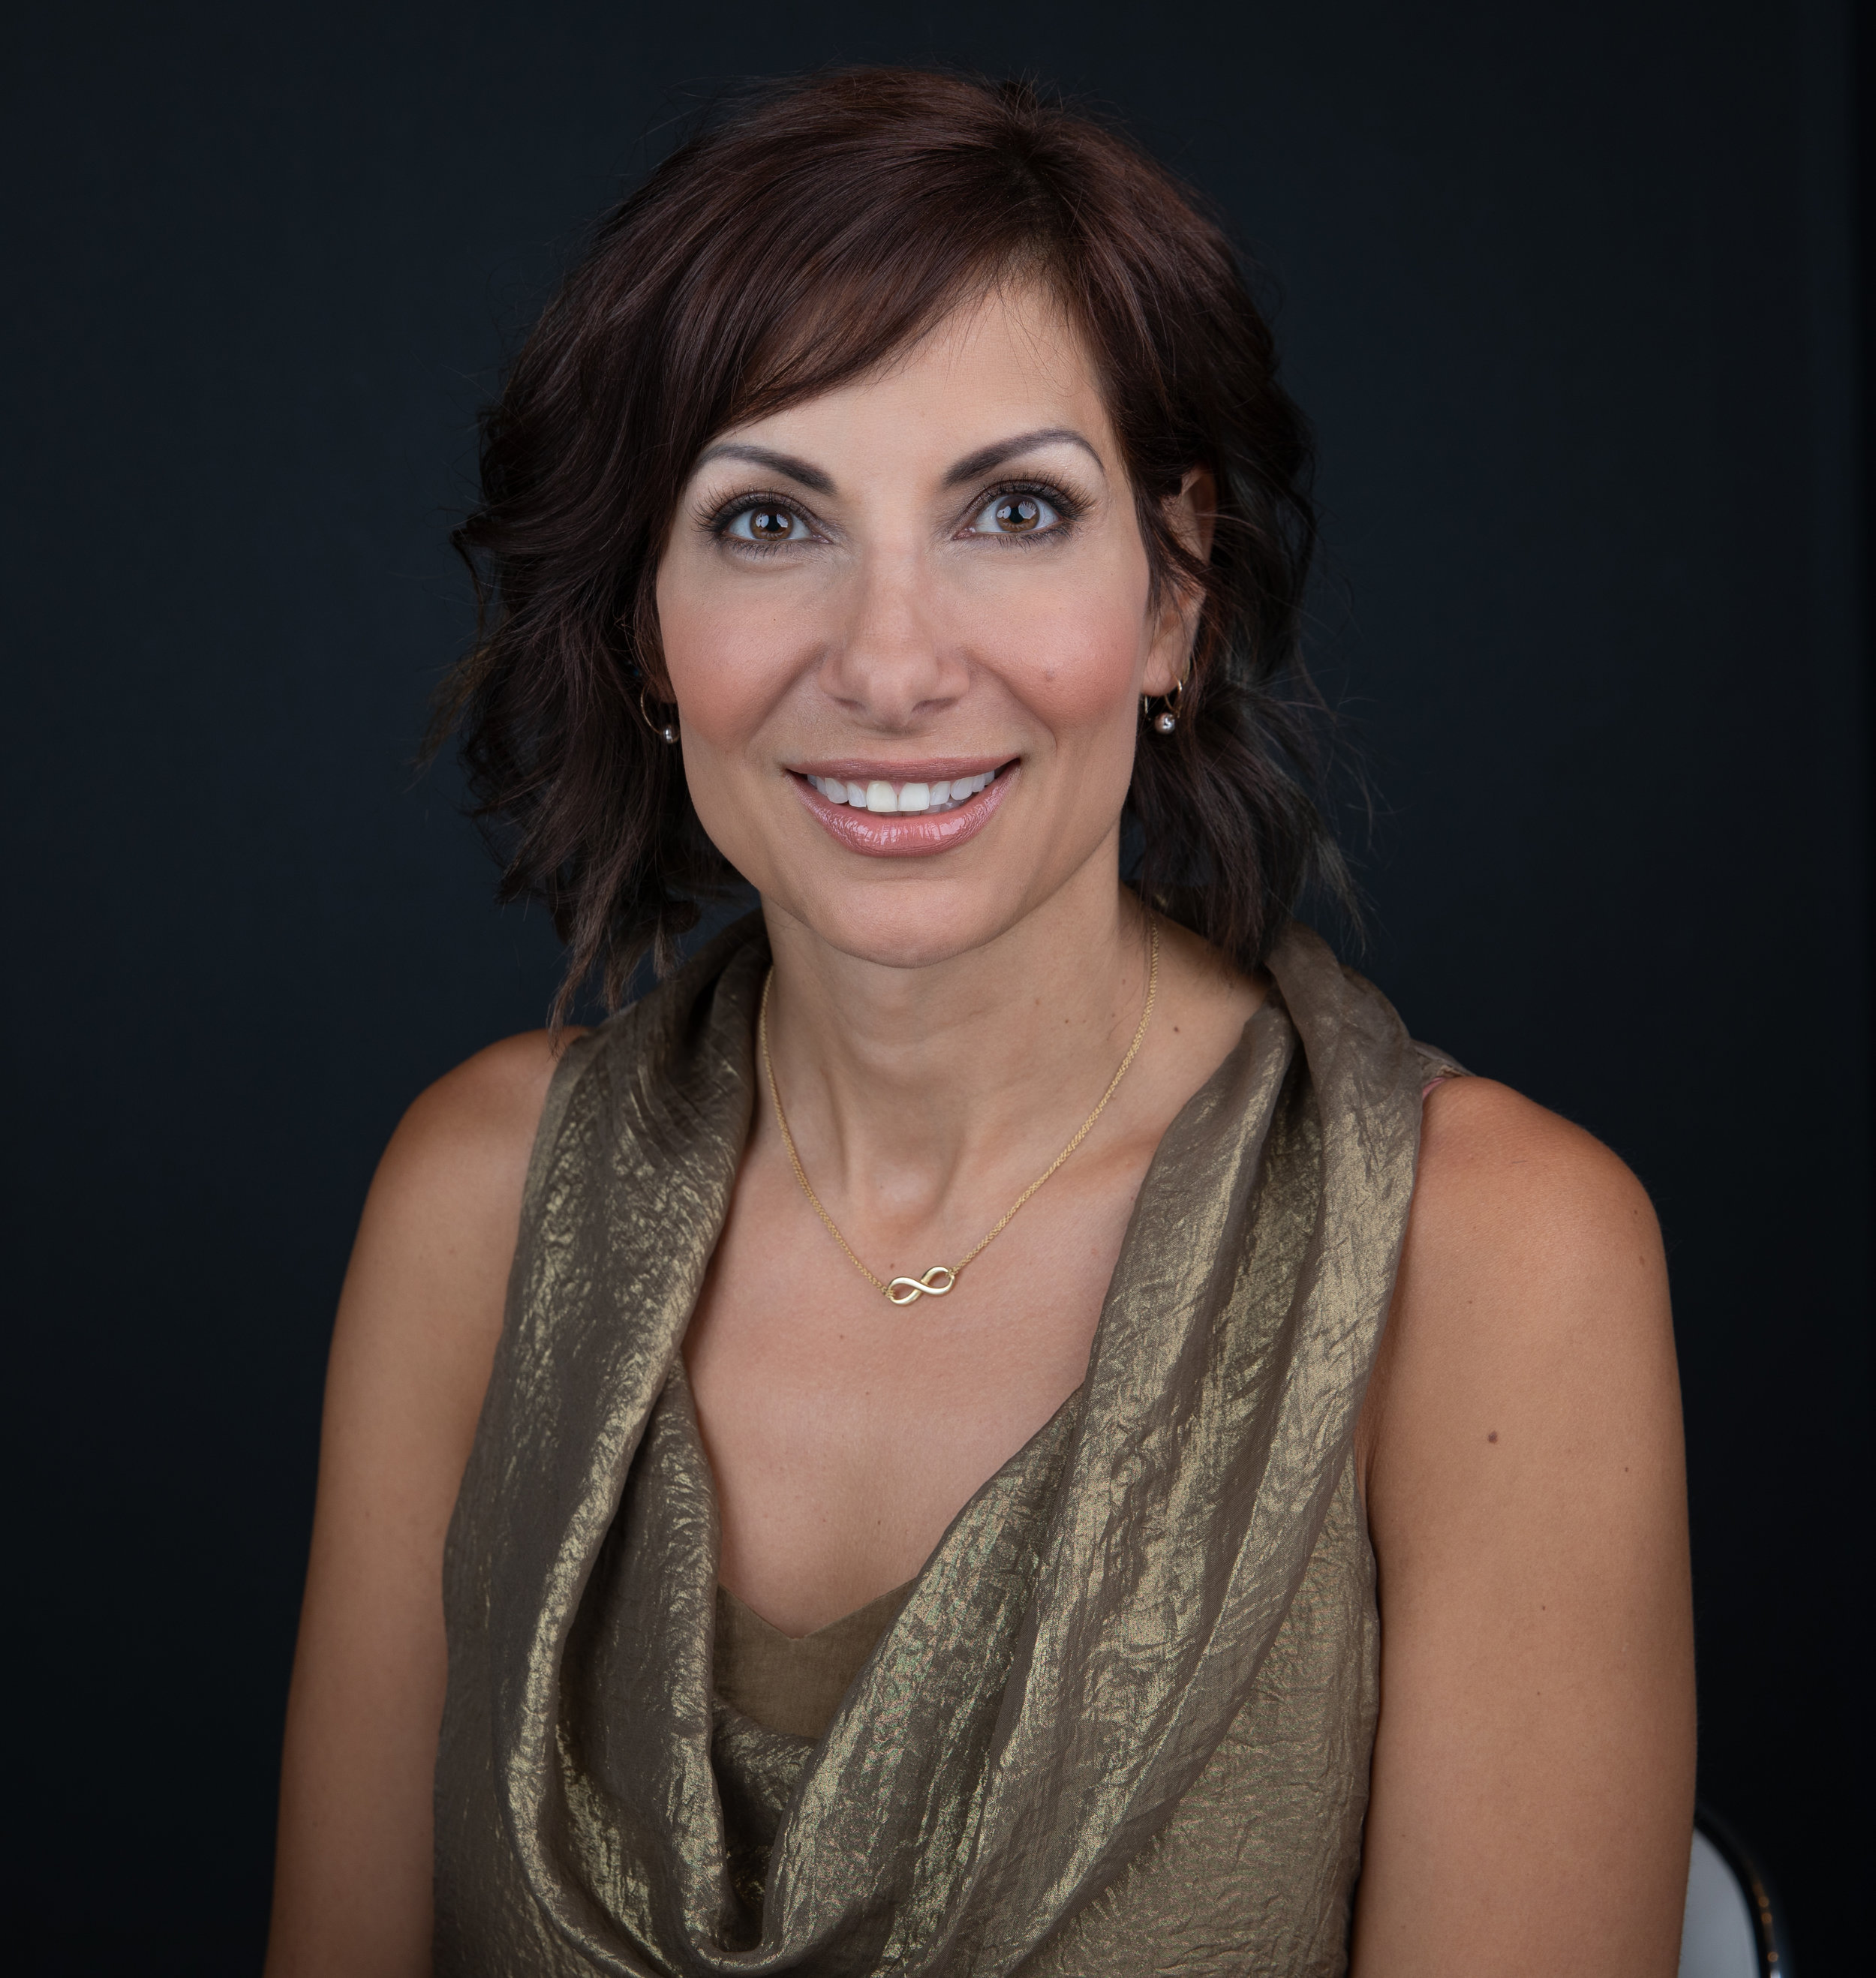 Stephanie Corey Co-founder & , General Partner, UpLevel Ops, LLC Co-founder, CLOC